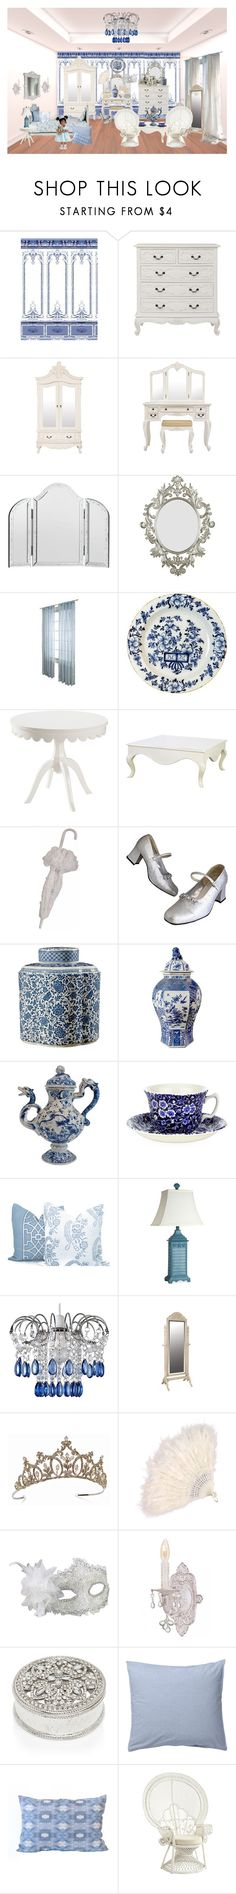 """""""Untitled #675"""" by bamasbabes on Polyvore featuring interior, interiors, interior design, home, home decor, interior decorating, Royal Delft, Kenroy Home, Home Decorators Collection and Bungalow 5"""